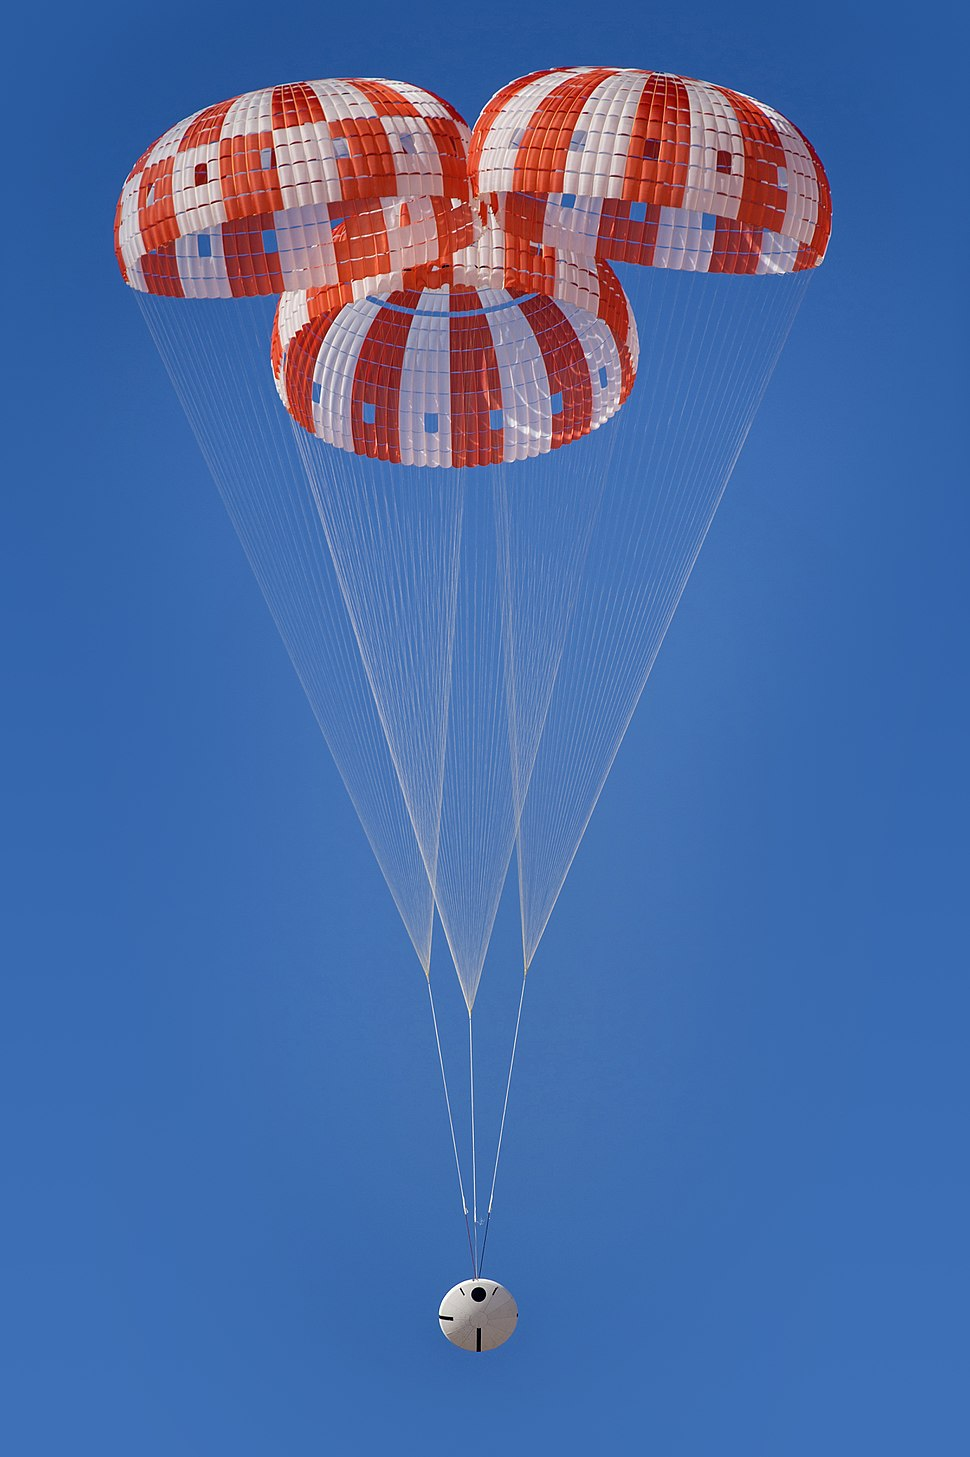 NASA%27s Orion Spacecraft Parachutes Tested at U.S. Army Yuma Proving Ground.jpg